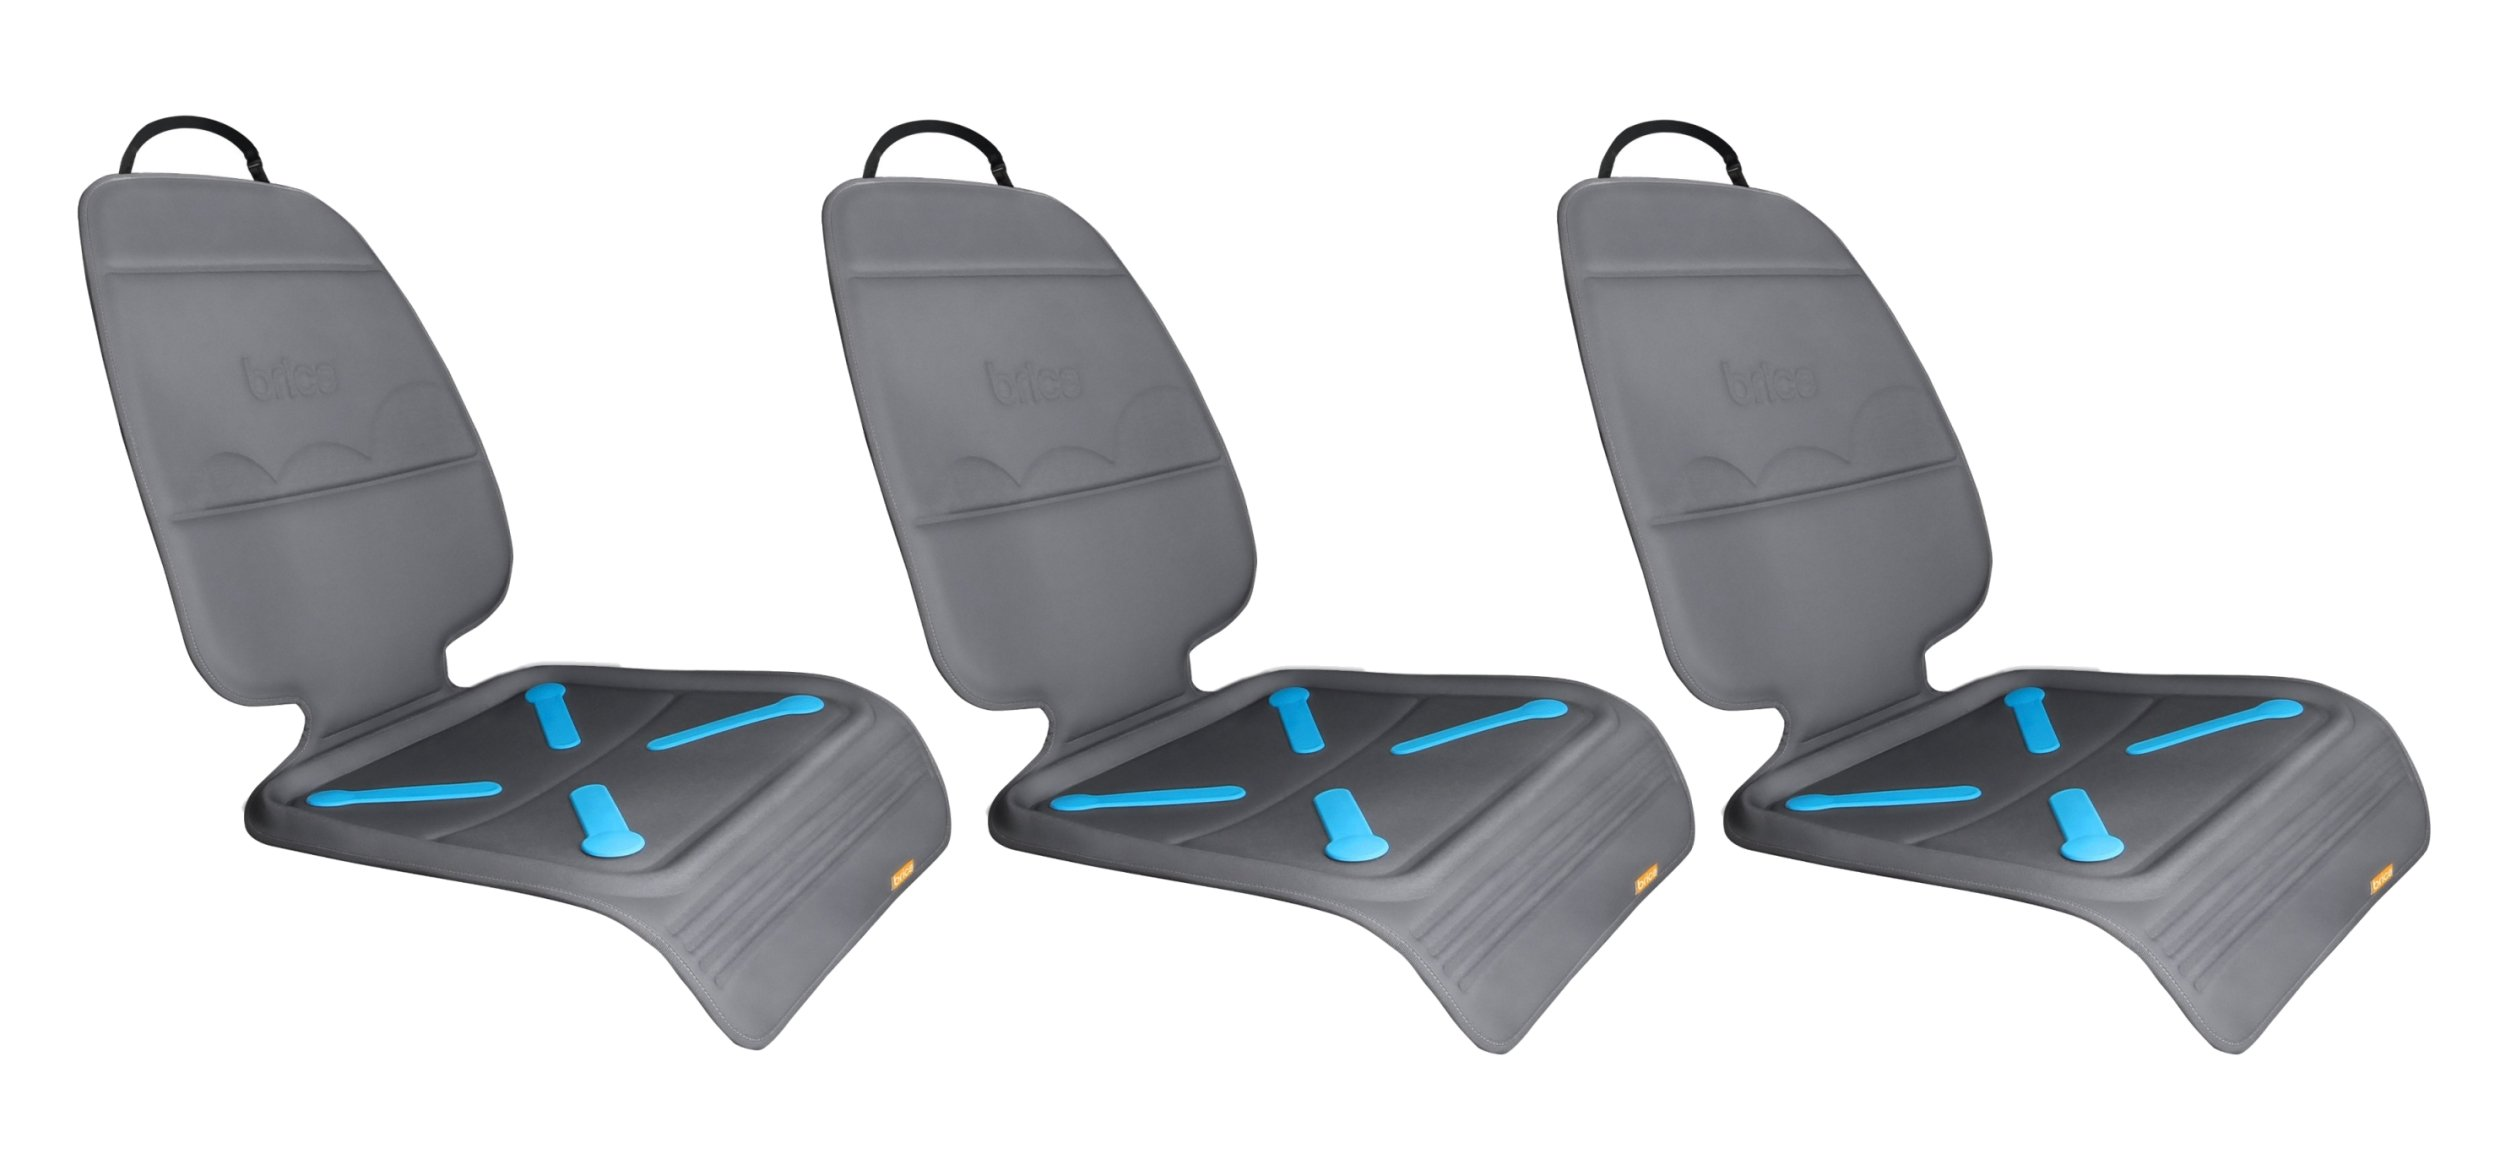 BRICA Seat Guardian Car Seat Protector, 3 Count by Brica (Image #1)